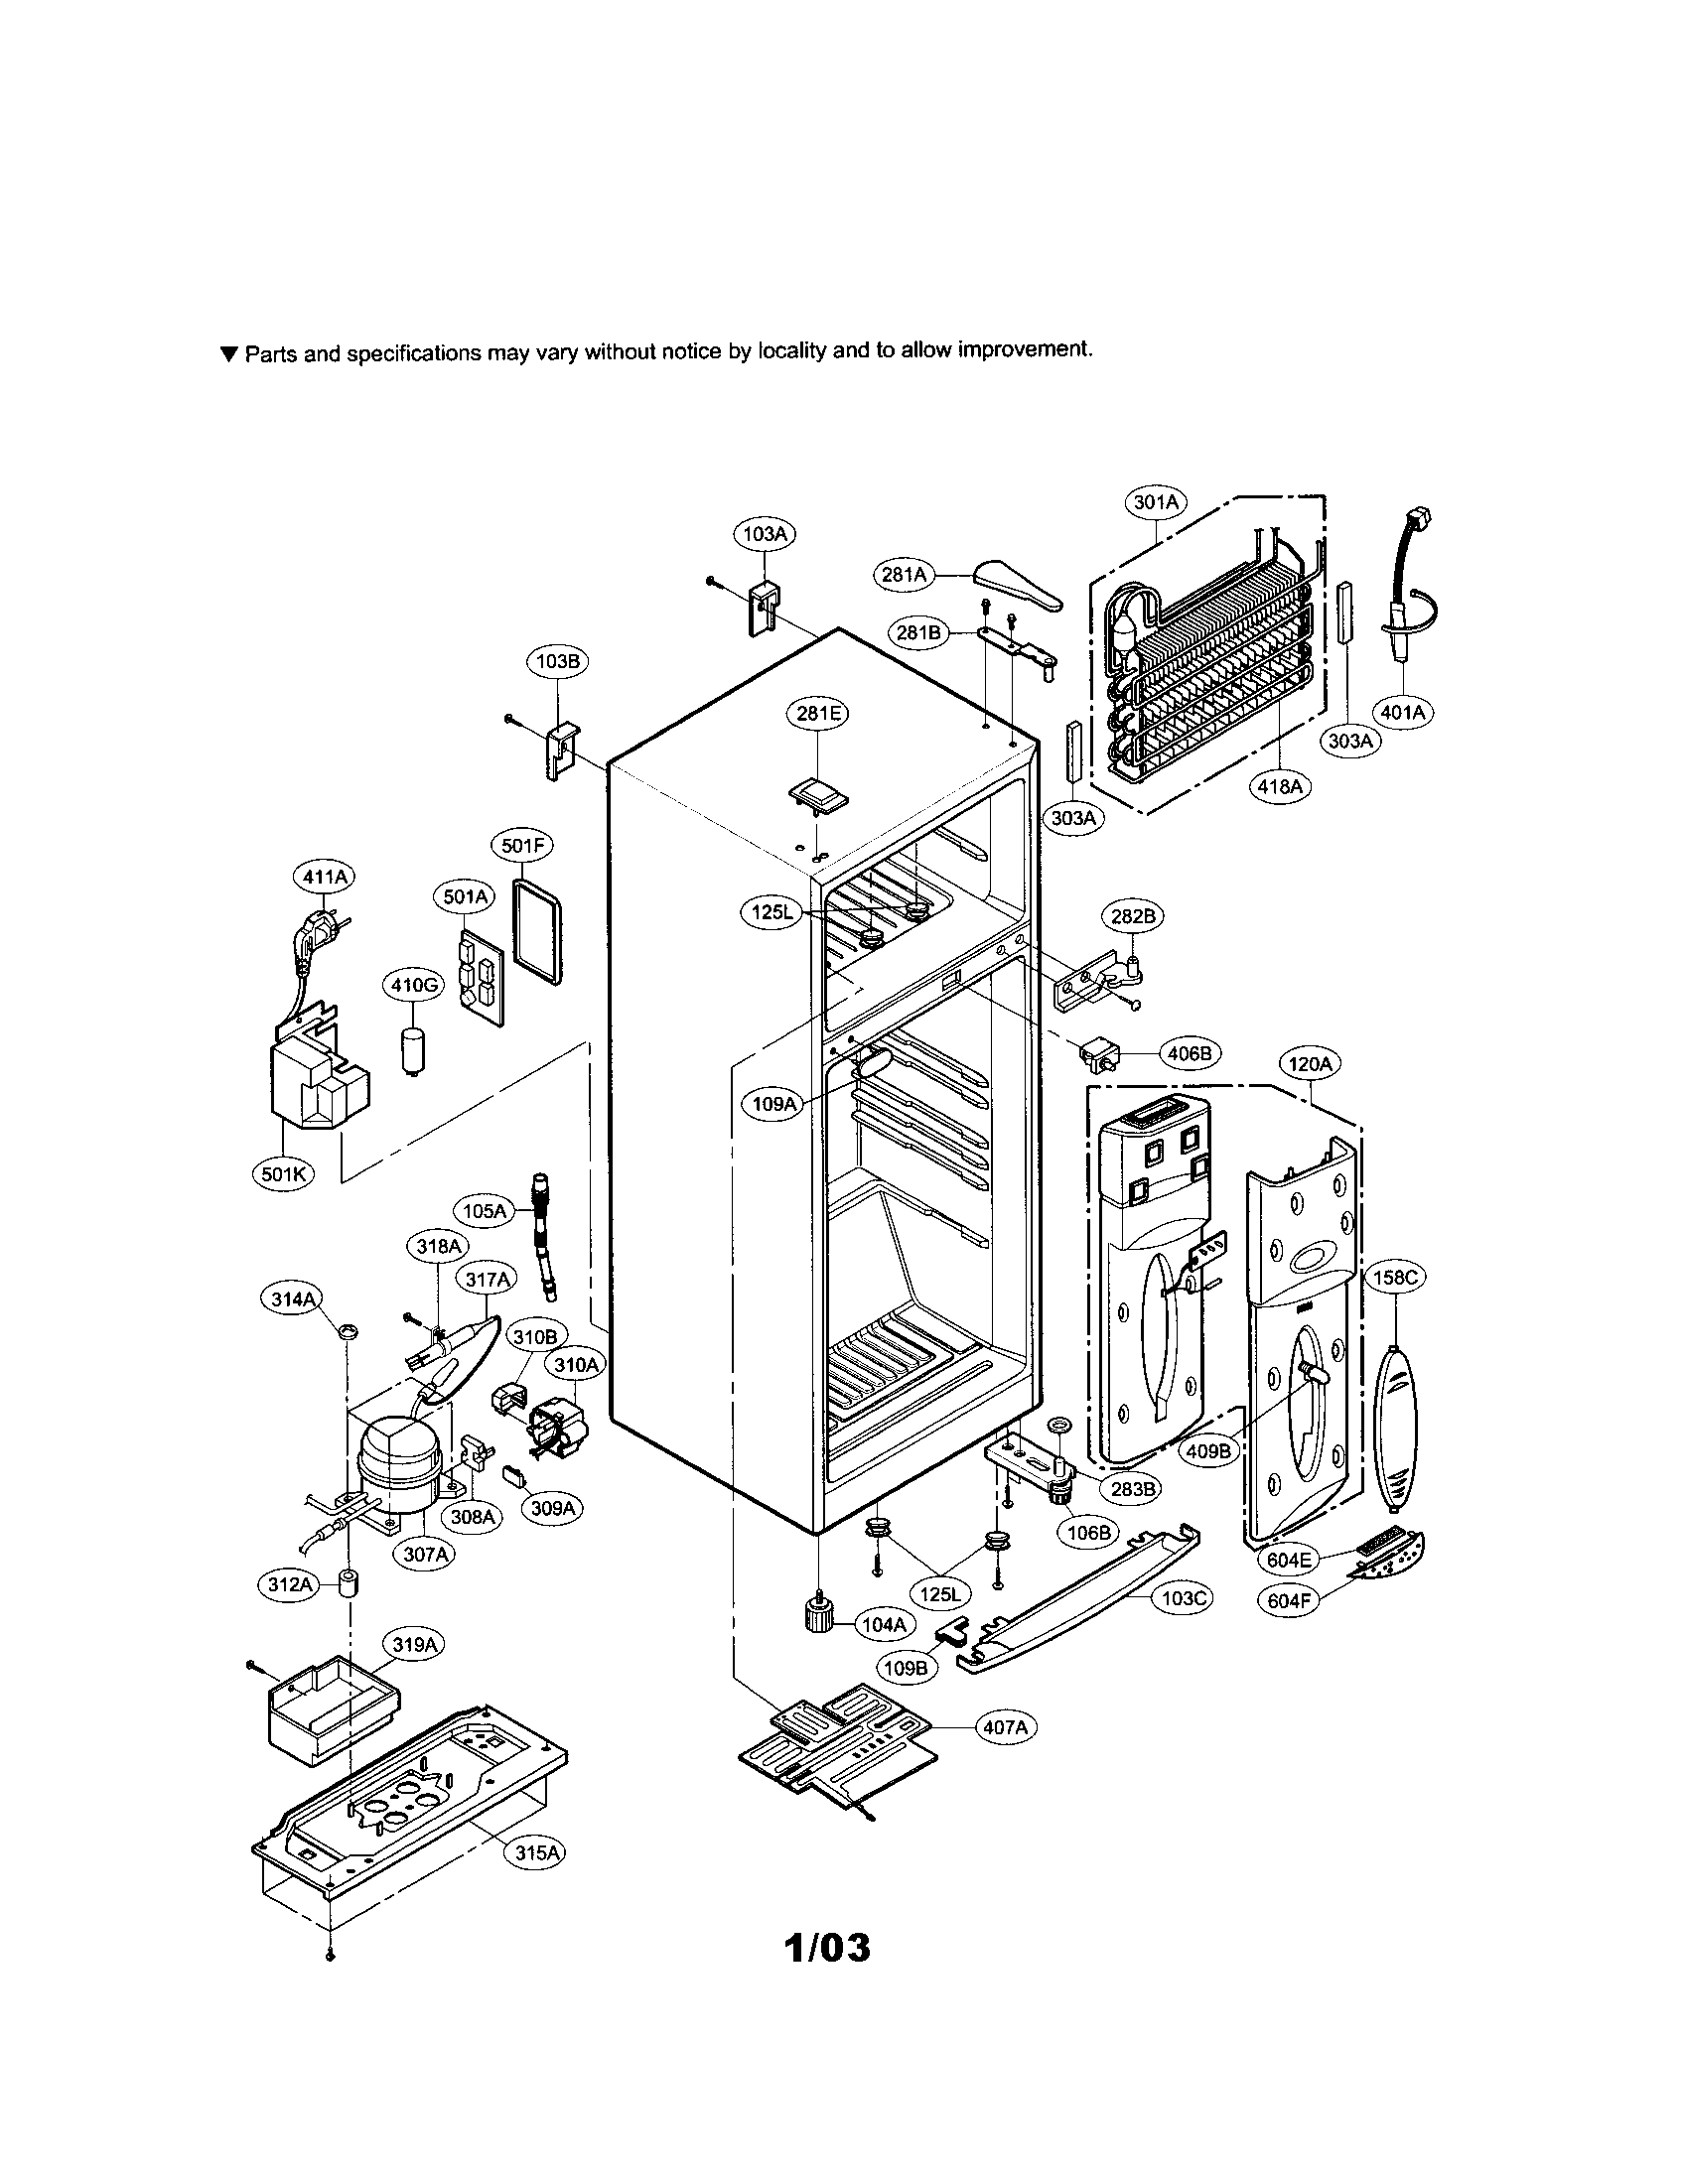 cabinet parts diagram and parts list for lg dishwasherparts model